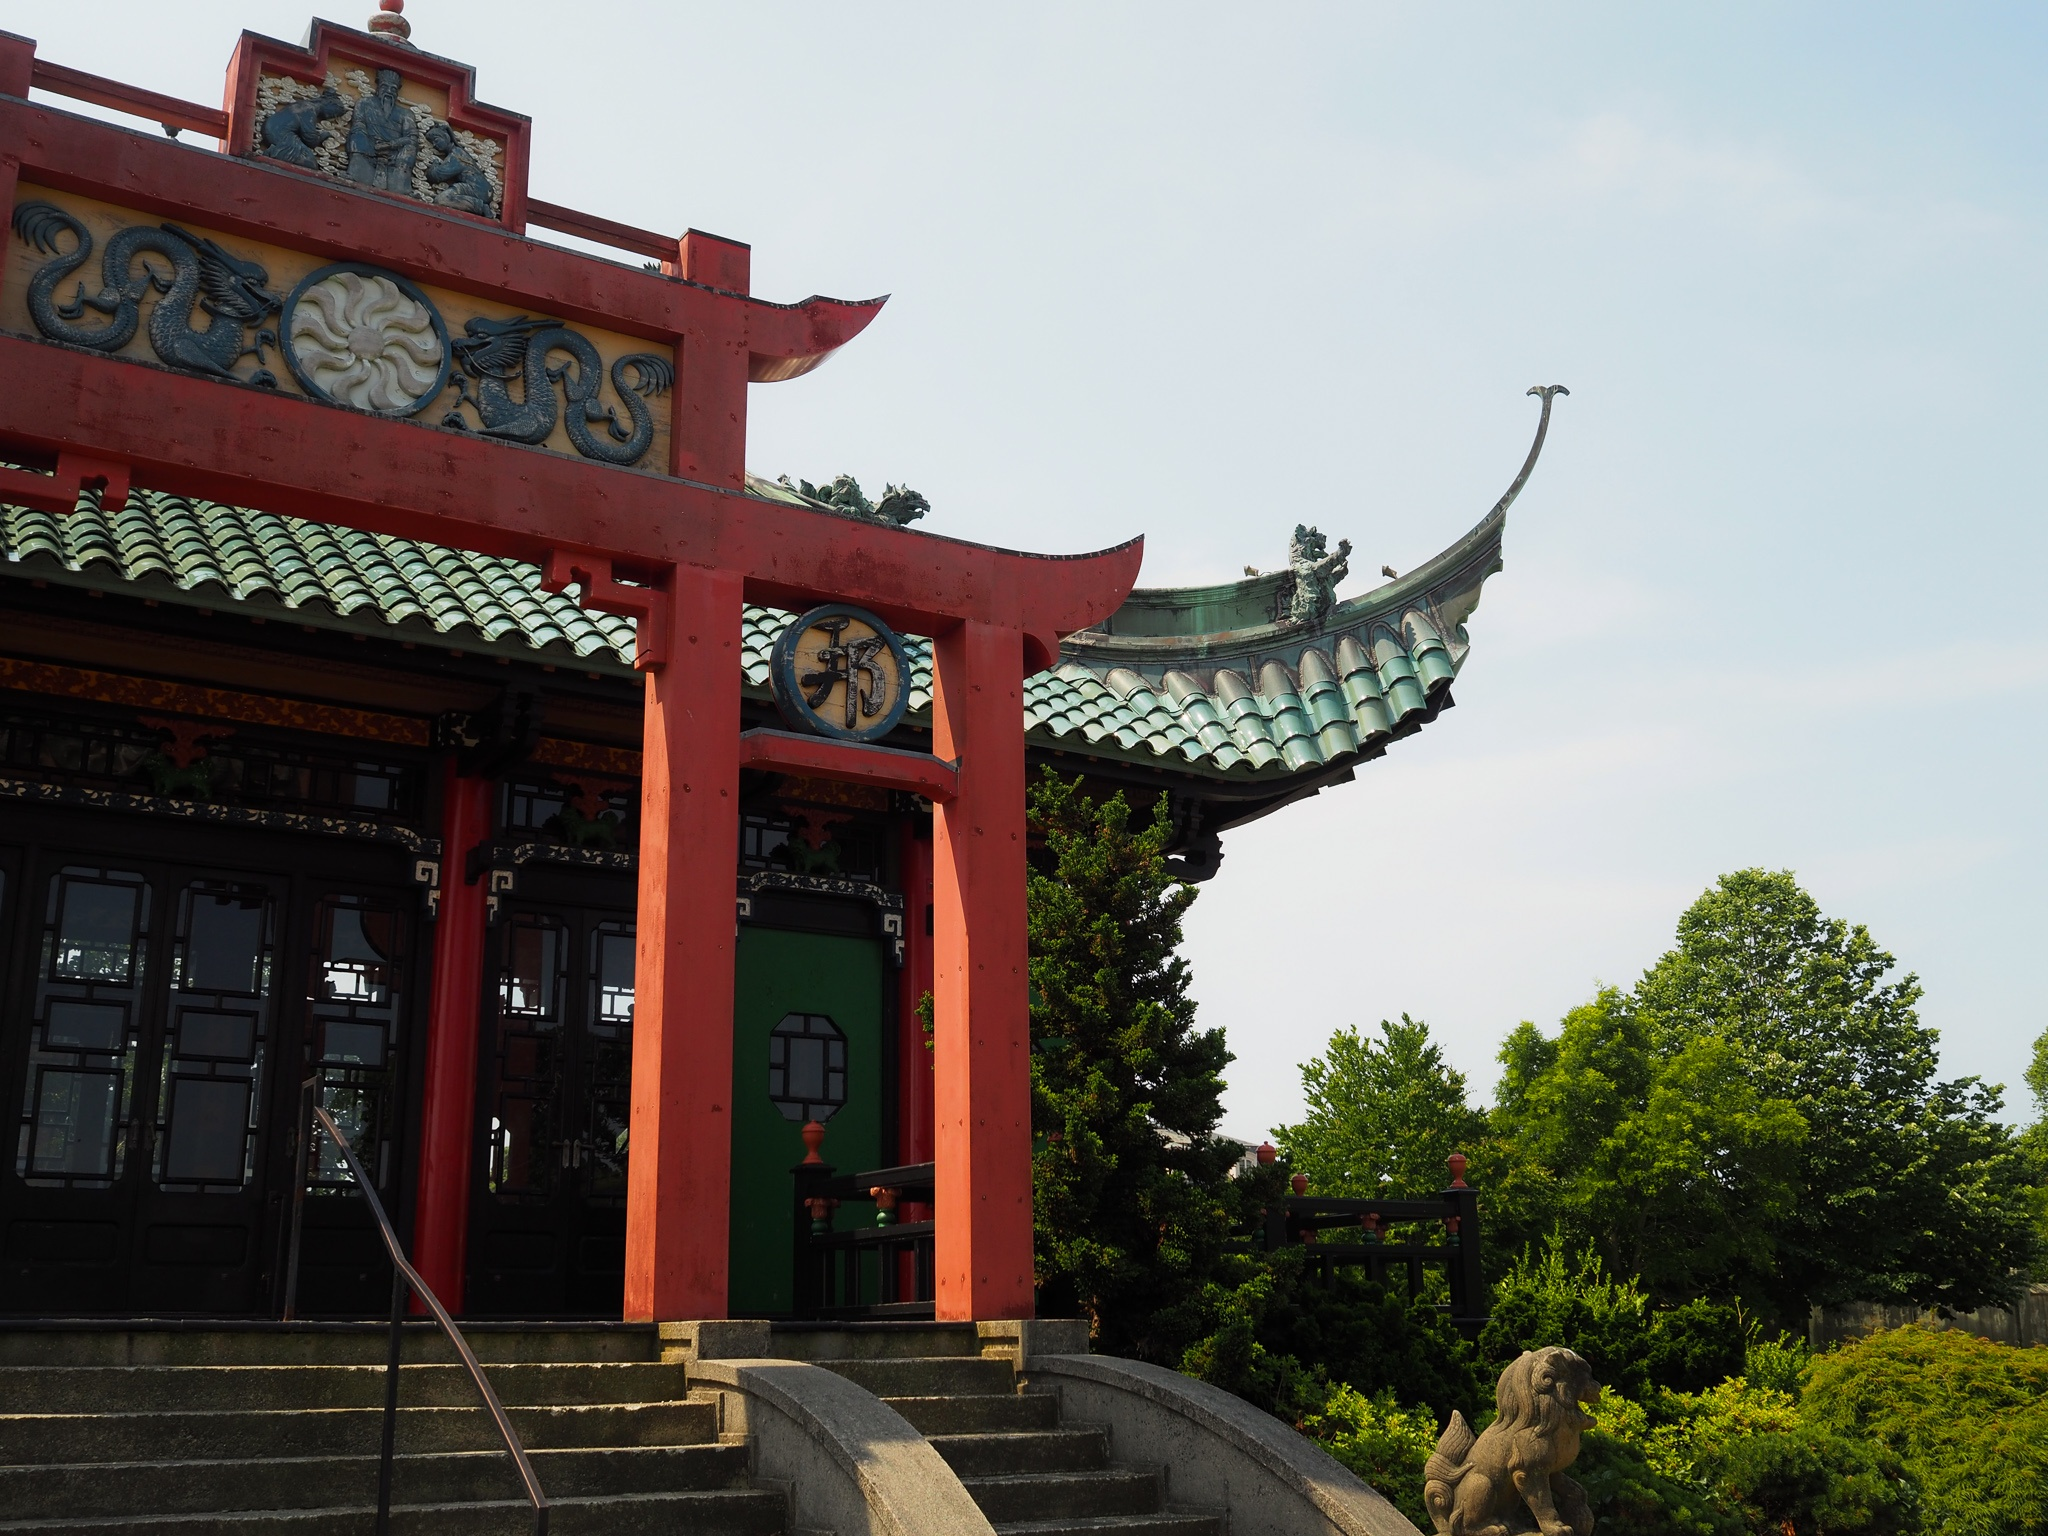 Chinese Tea House: The Chinese Tea House is located at the Marble House and was built by Mrs. Vanderbilt to host rallies for women's rights to vote.